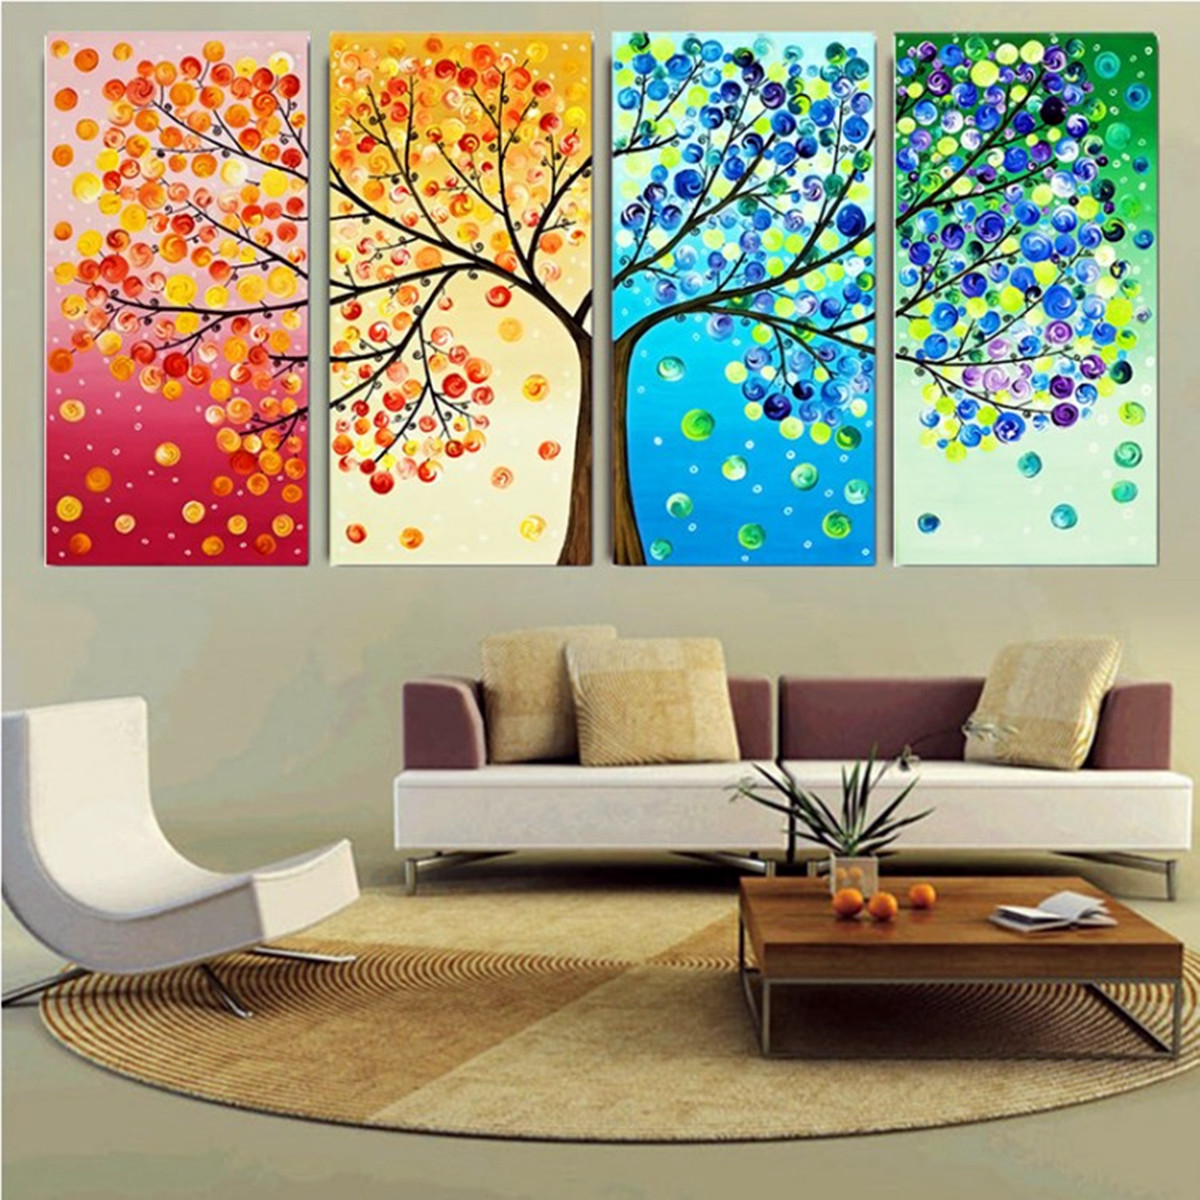 Diy handmade colorful season tree counted cross stitch for 4 home decor